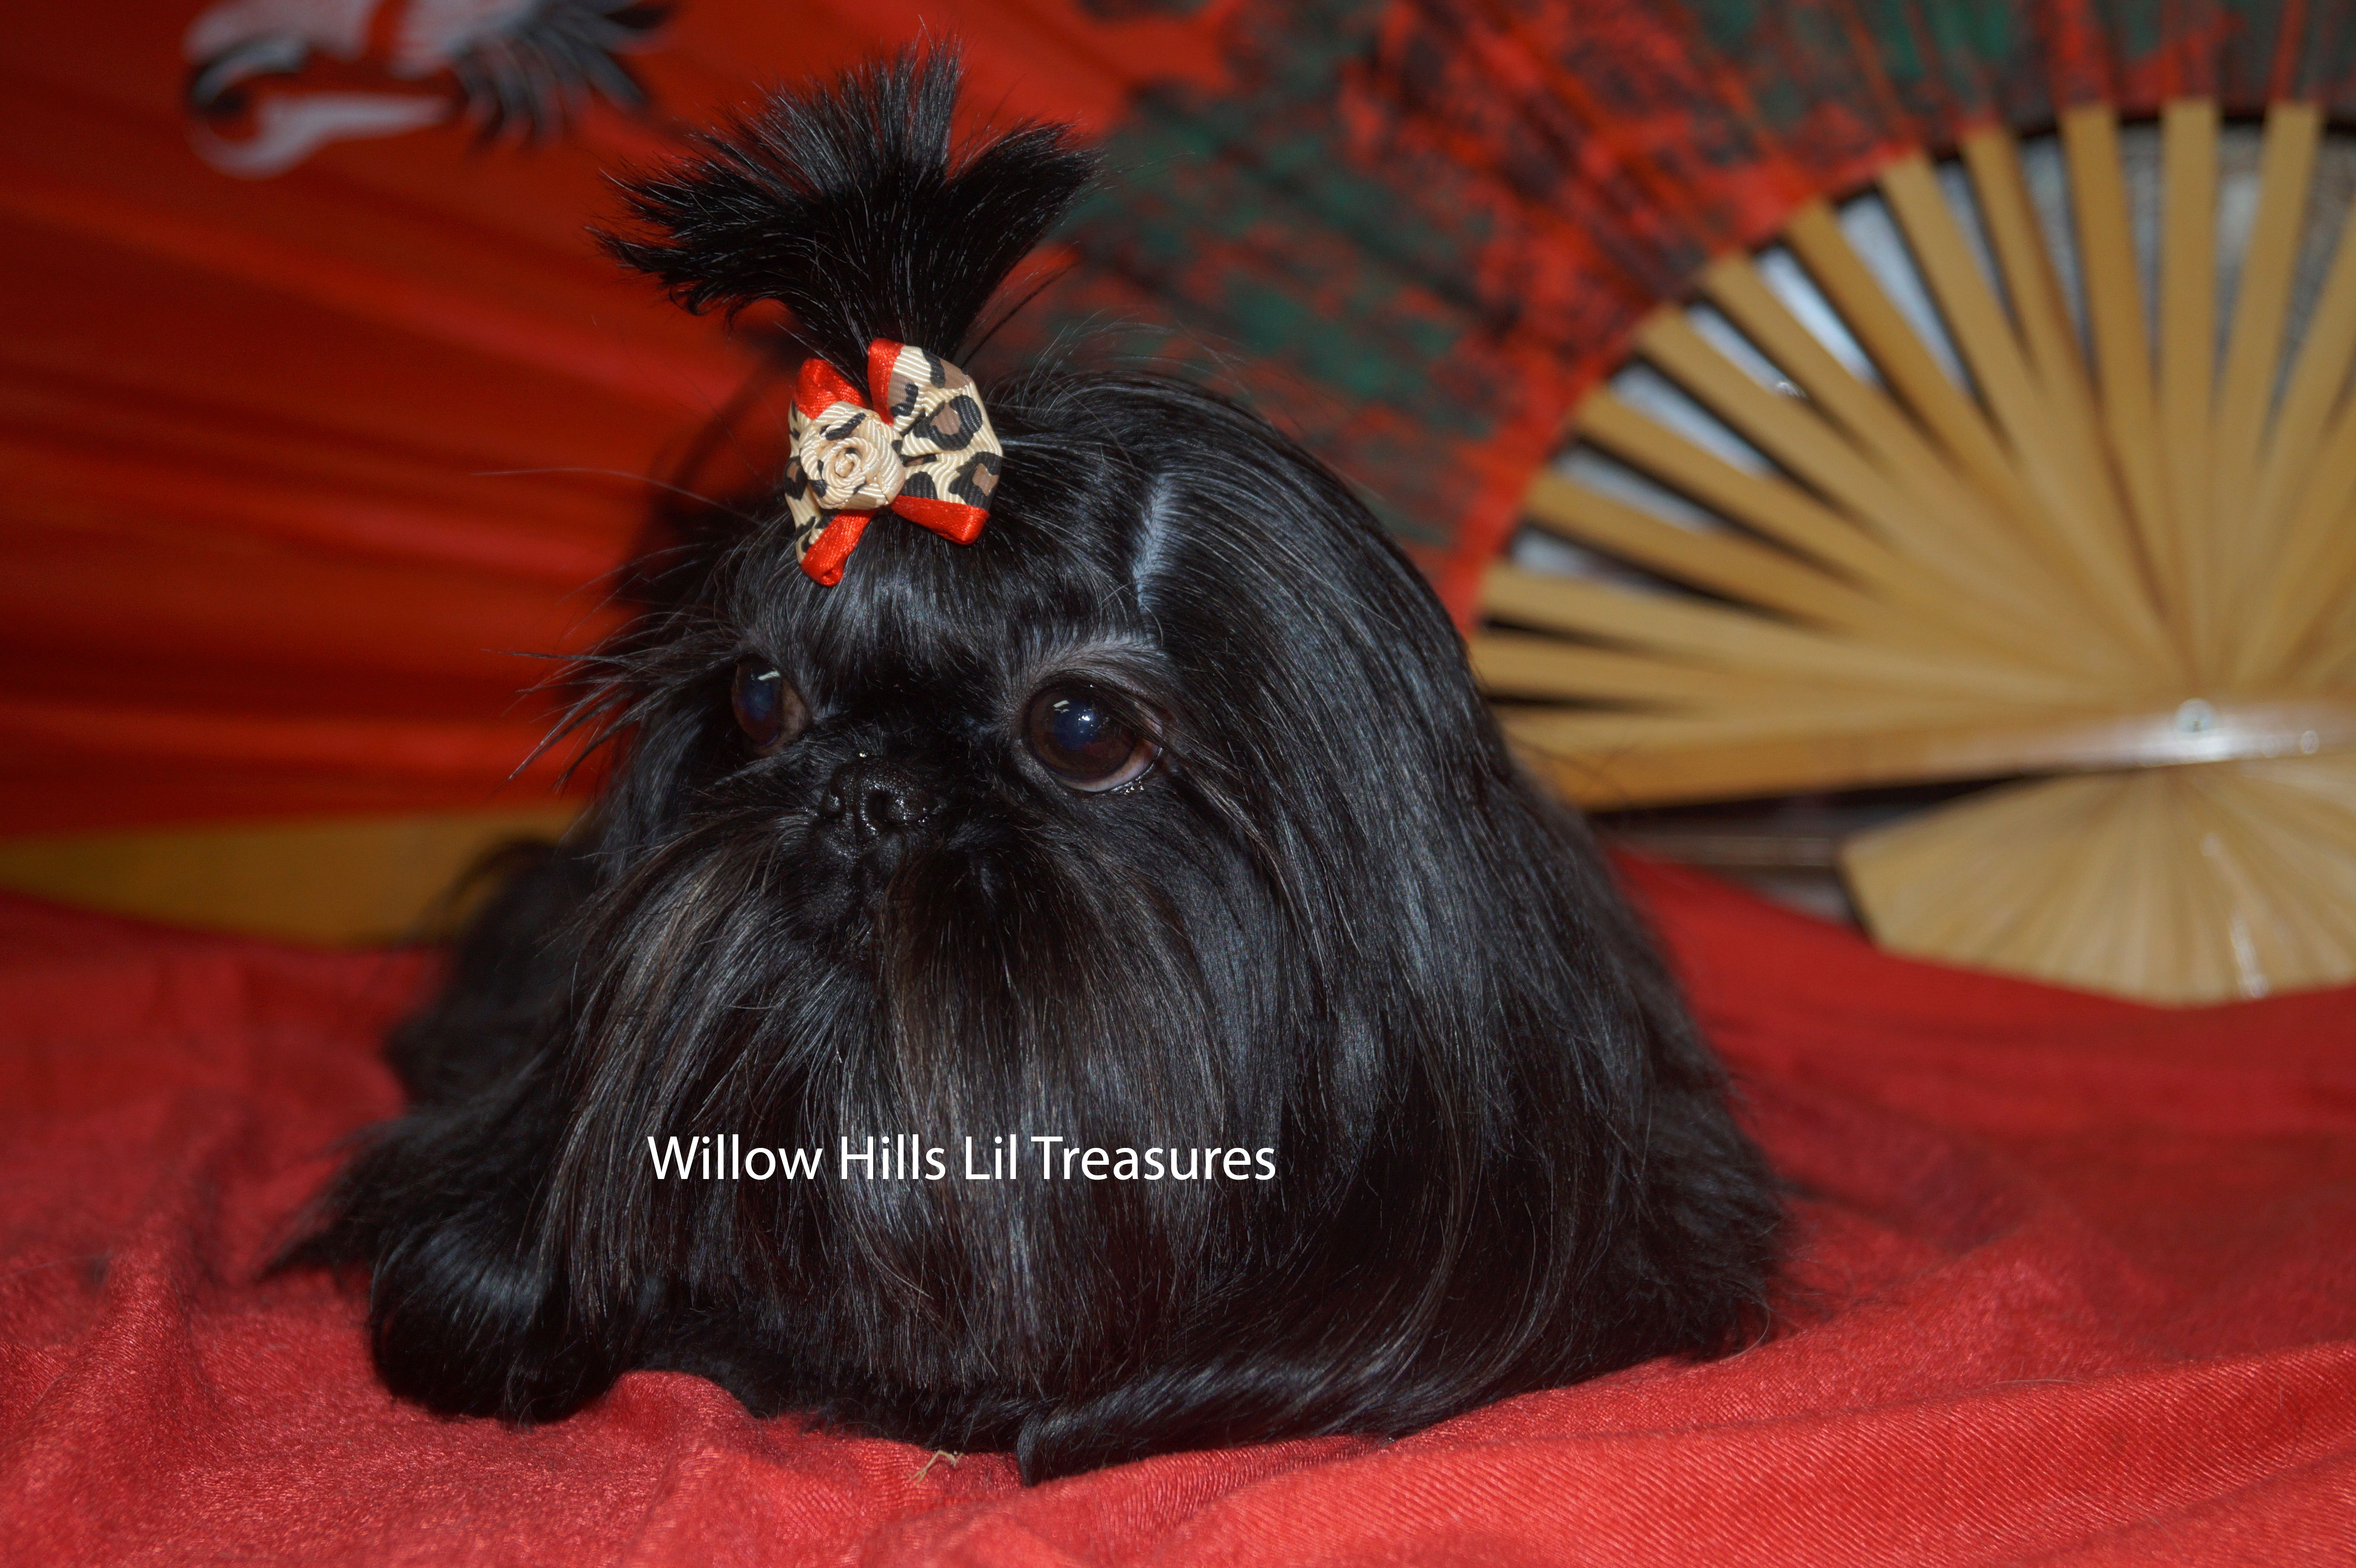 Willow Hills Lil Treasures Raises Imperial Shih Tzu Tiny Purse Puppies For Sale Willow Hill Shih Tzu Puppy Imperial Shih Tzu